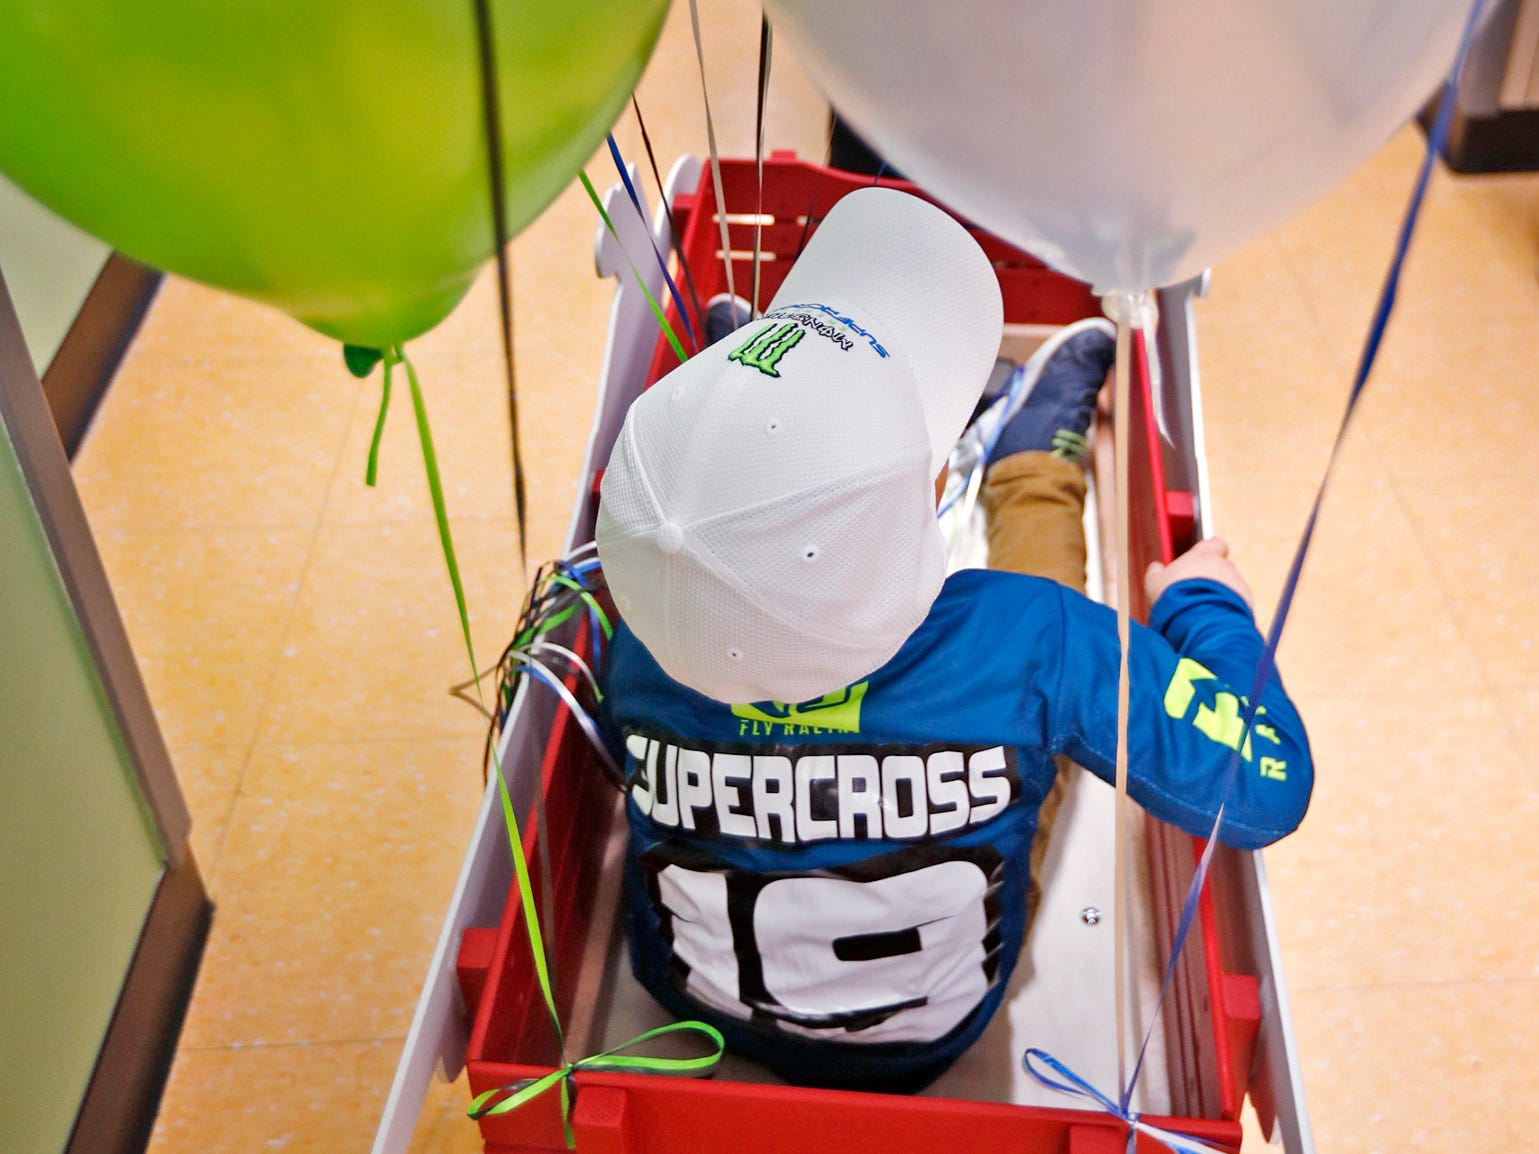 Jaxson Bare rides in a wagon to classrooms at Day Early Learning Center with Supercross racer Mike Alessi who visits with kids at the center, Thursday, March 14, 2019.  Alessi provided Supercross rider jerseys and hats for the kids and gave wagon rides, on a break before the upcoming Supercross race.